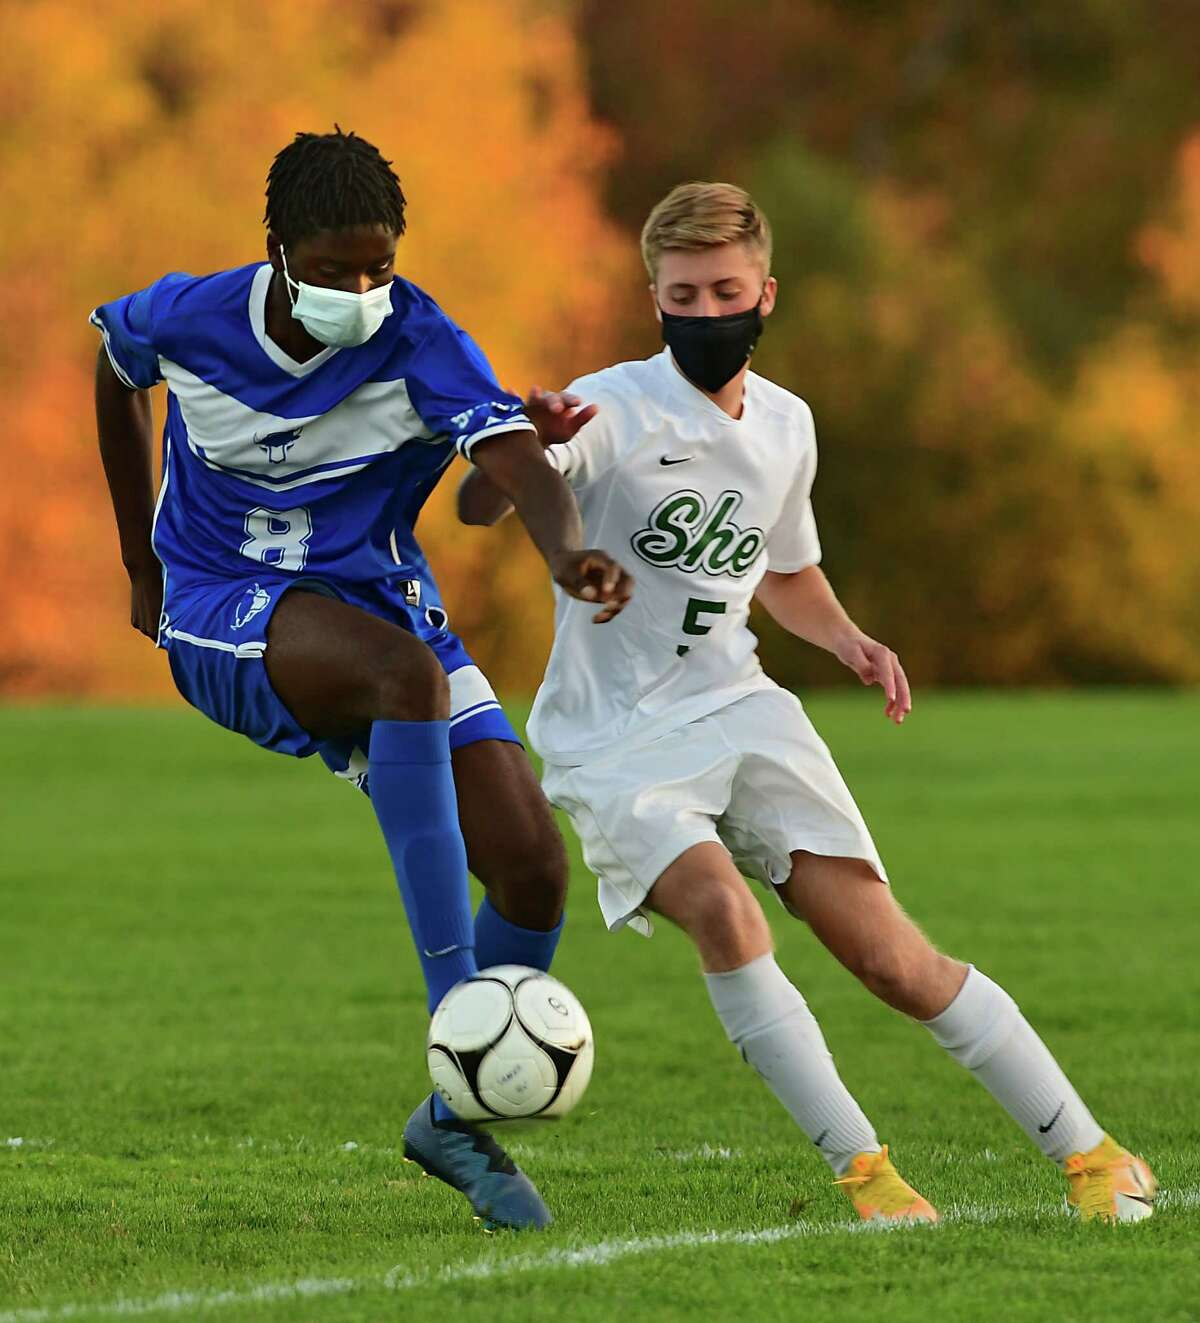 Shaker's Jaaziel Olayinka, left, and Shenendehowa's Owen Brignati battle during a soccer game on Thursday, Oct. 15, 2020 in Latham, N.Y. (Lori Van Buren/Times Union)